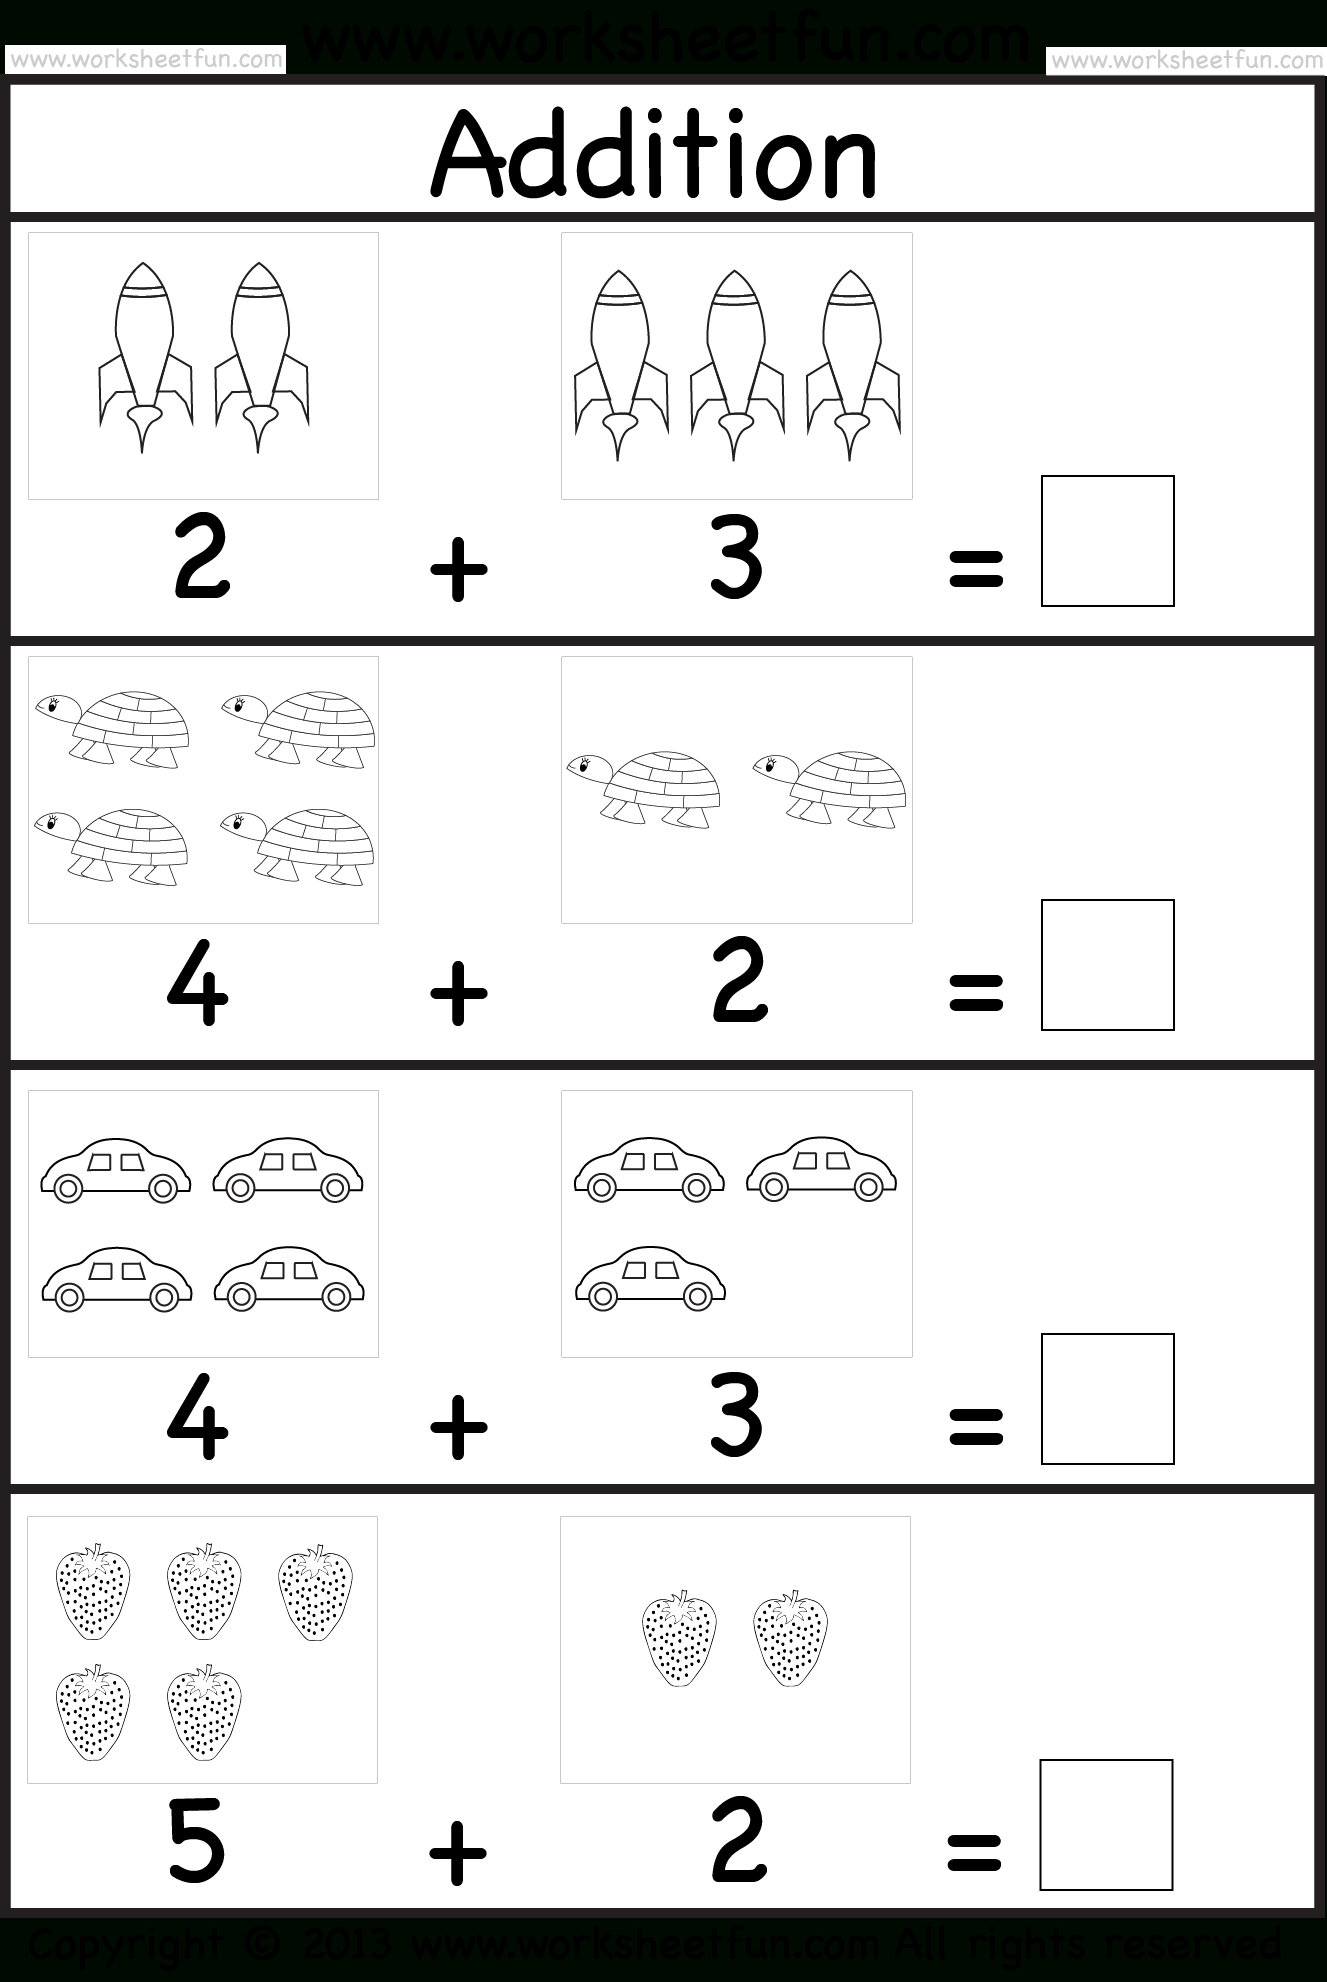 Addition Worksheet. This Site Has Great Free Worksheets For   Free Printable Preschool Addition Worksheets